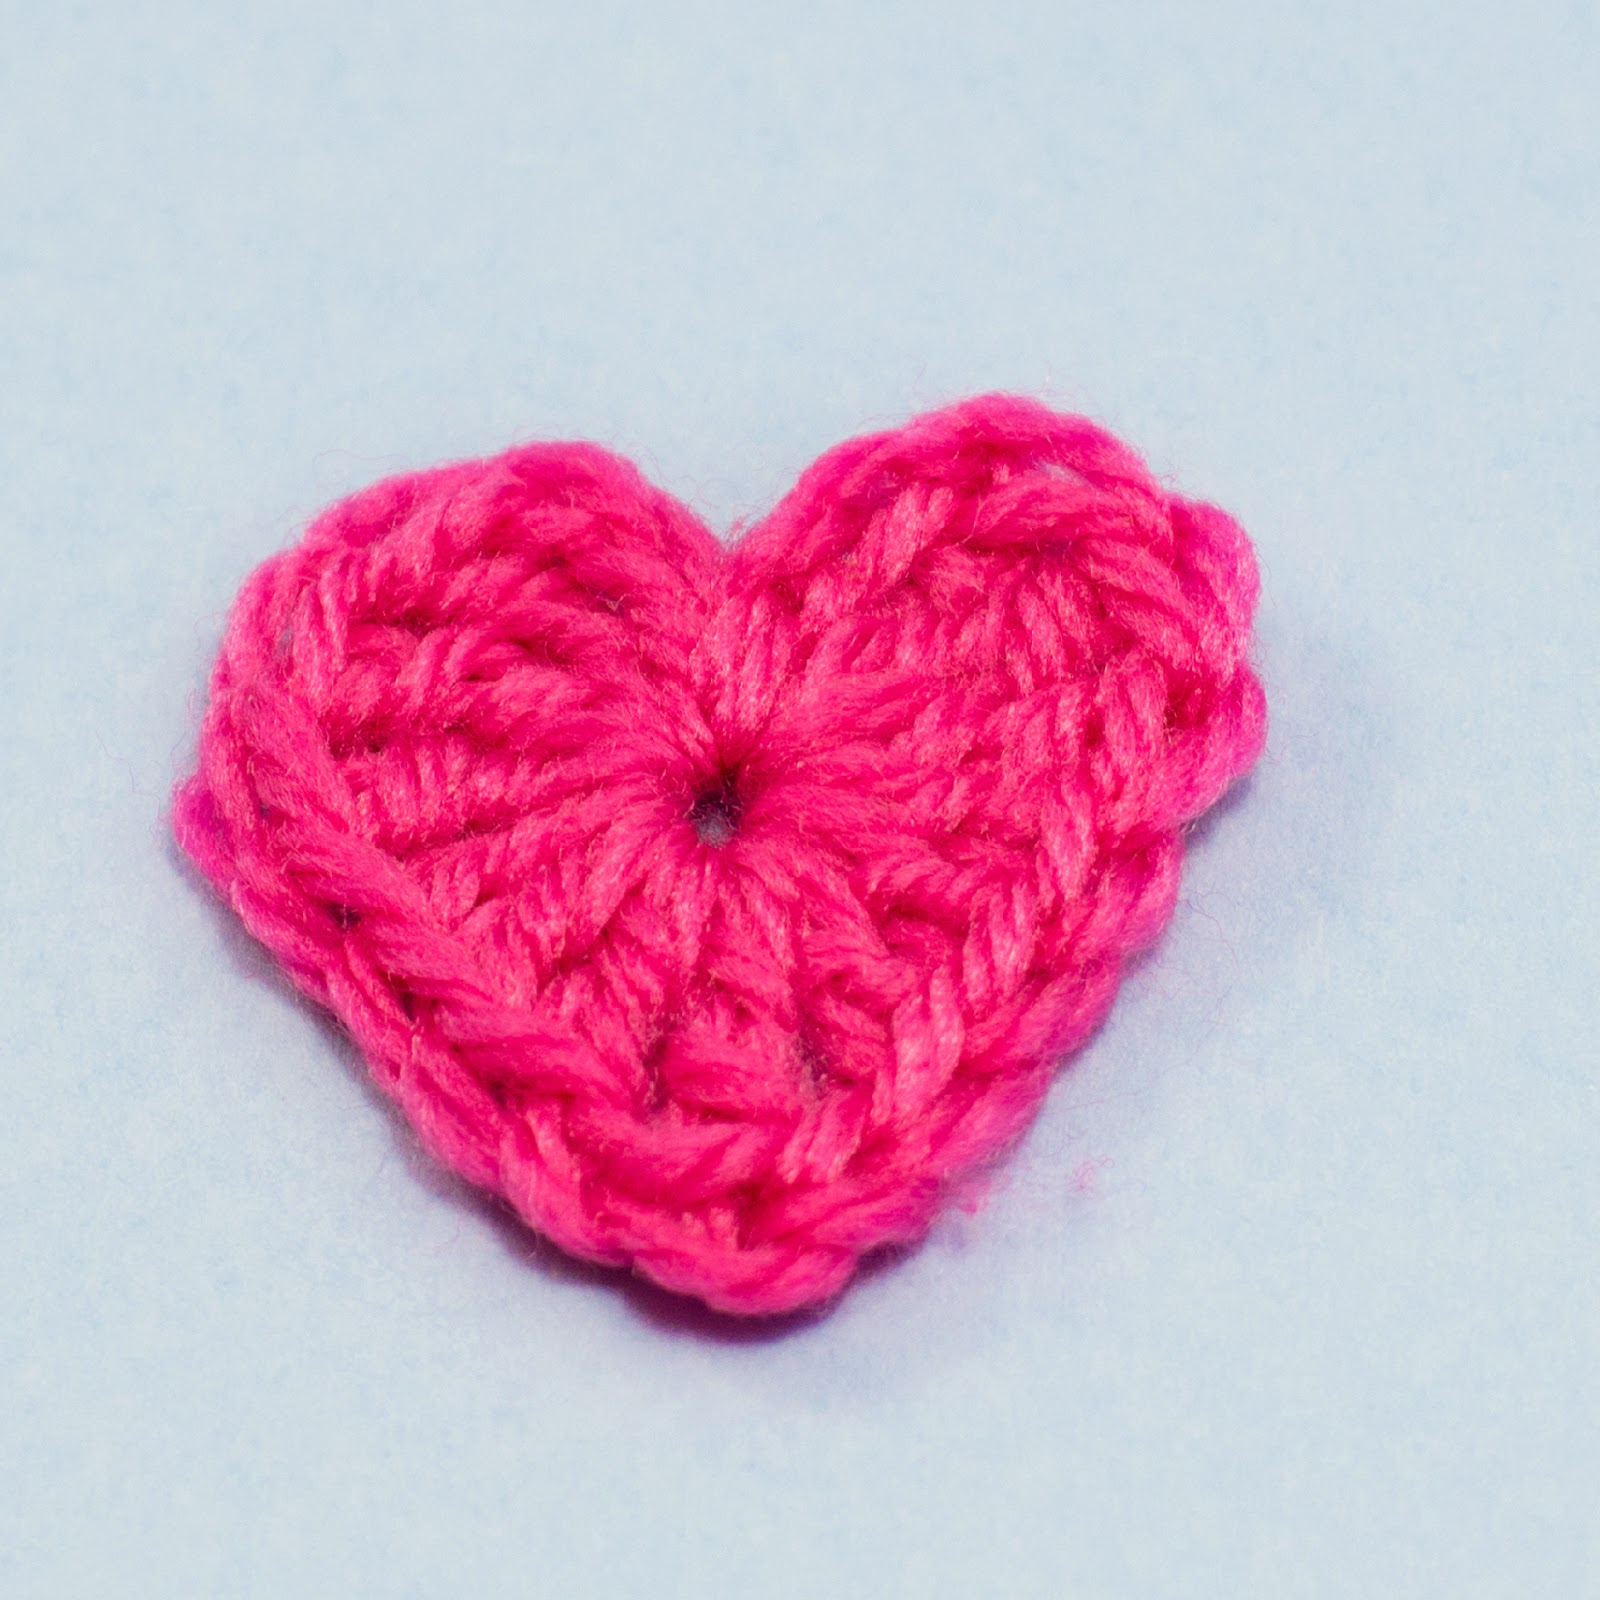 Crochet A Heart : ... red heart free crochet patterns 755 x 679 363 kb jpeg red heart free